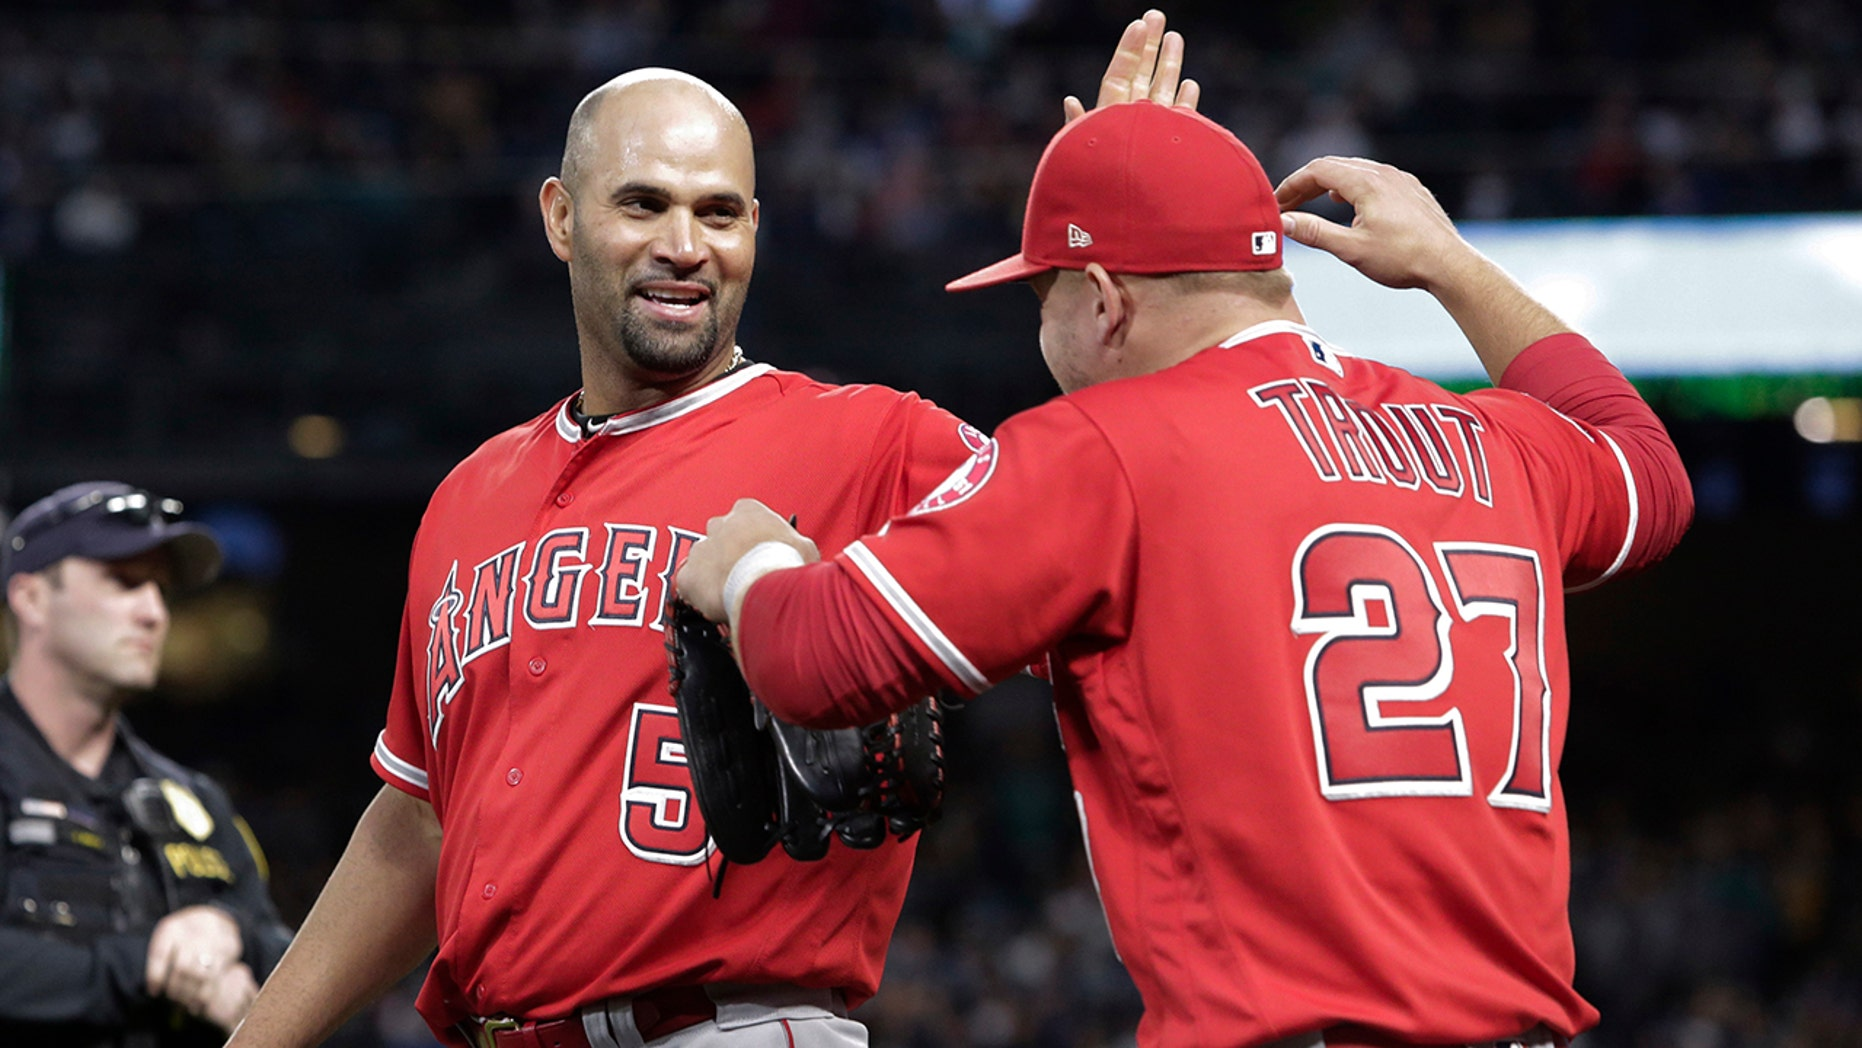 Los Angeles Angels' Albert Pujols celebrates with Mike Trout between the top and bottom of the fifth inning after Pujols singled for his 3,000th career hit, against the Seattle Mariners in a baseball game Friday, May 4, 2018, in Seattle. (AP Photo/Jason Redmond)